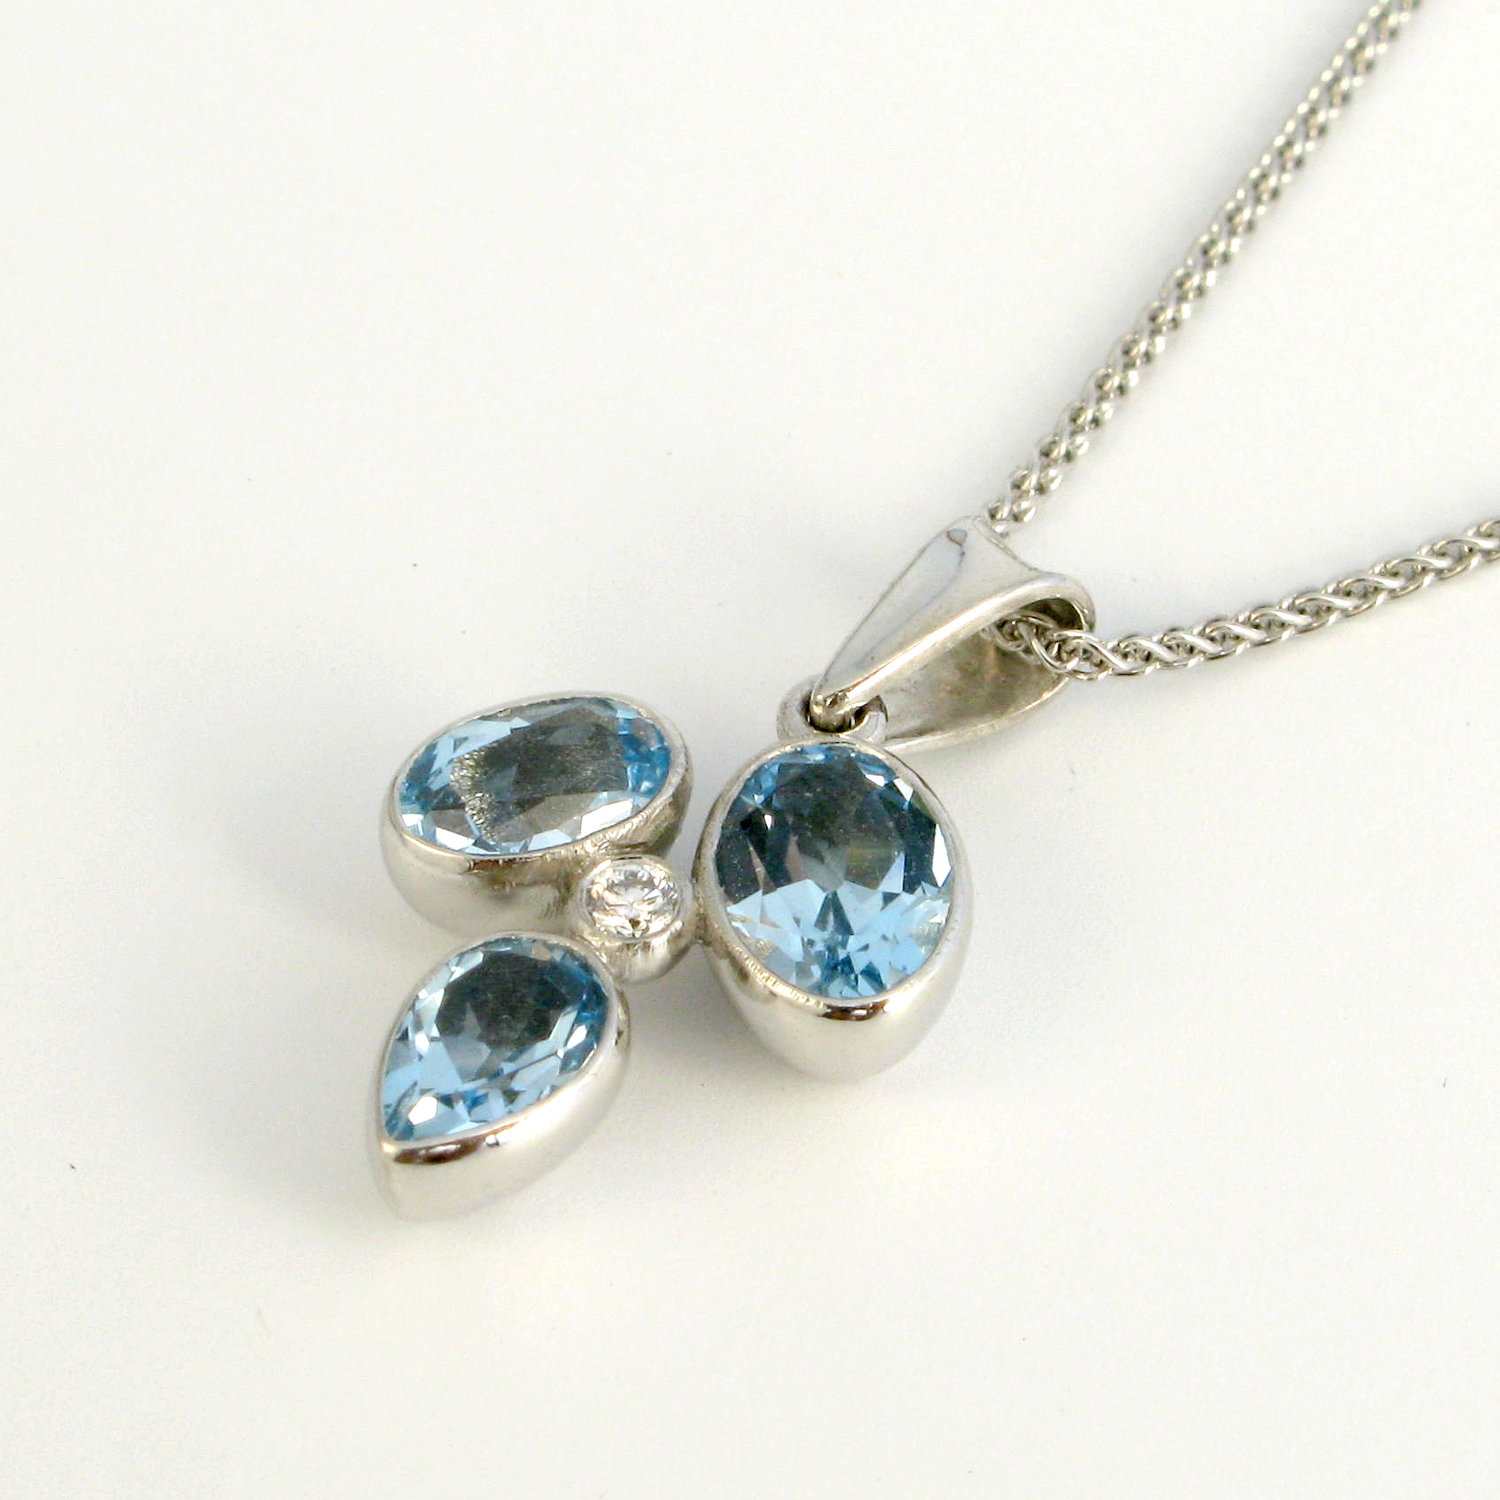 18k White Gold Mini 'Kaleidoscope' Necklace with Sky Blue Topazes and a Diamond by Pratima Design Fine Art Jewelry